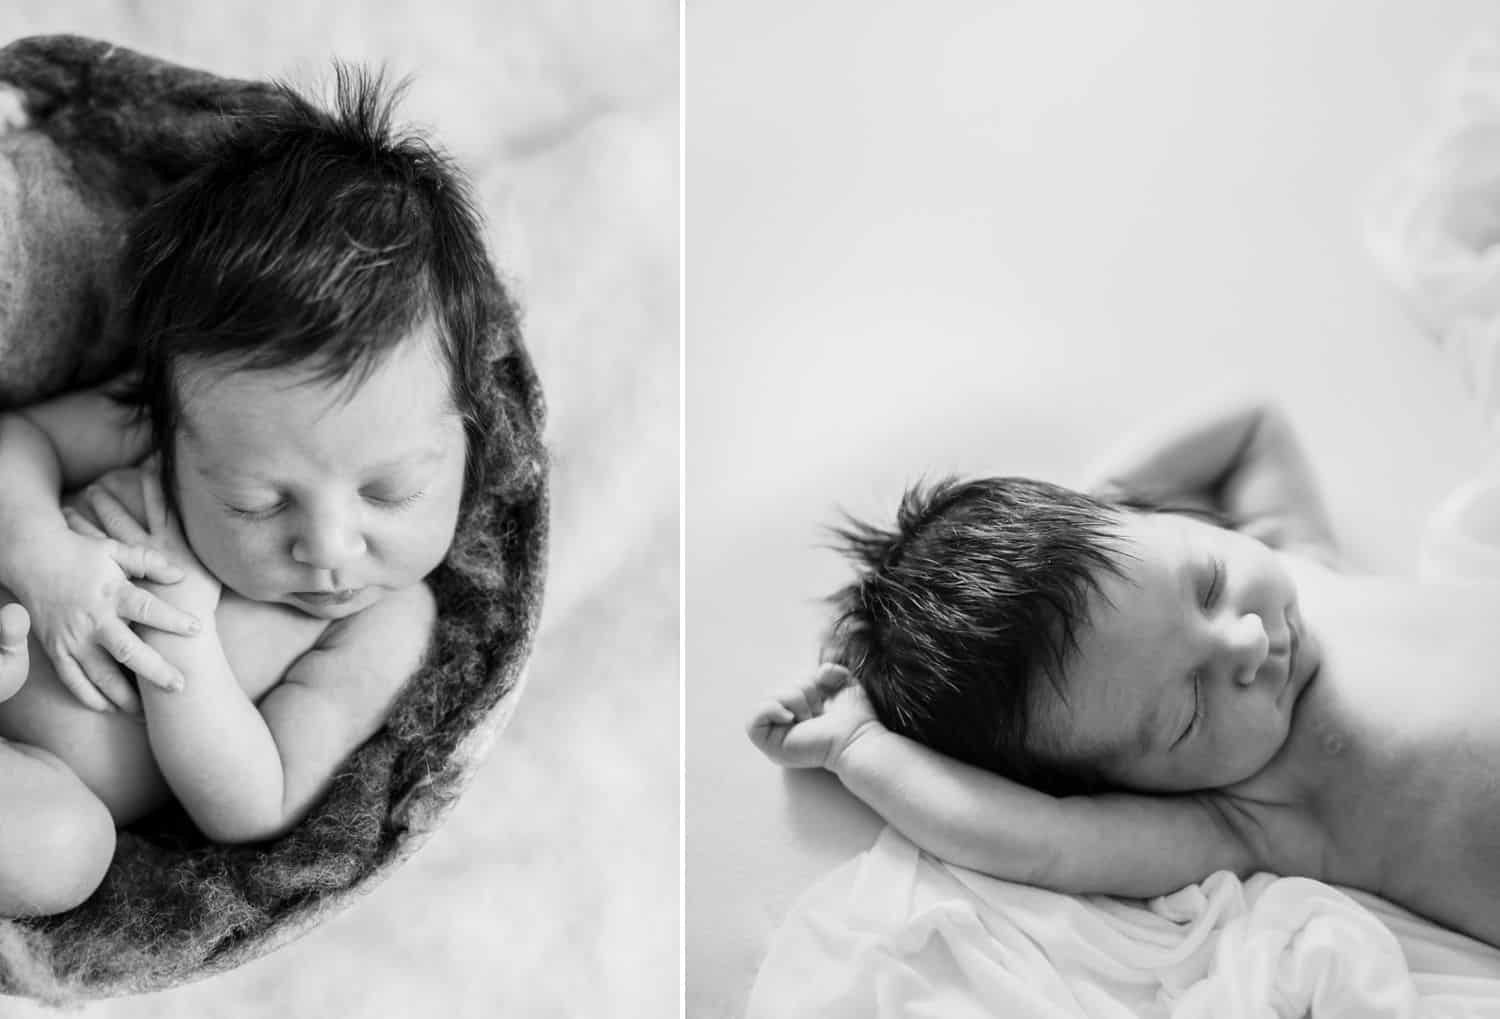 Hate in-person sales? Here's how to sell albums online! | Two of Ashley Wilbur's black-and-white newborn photos are displayed side-by-side.